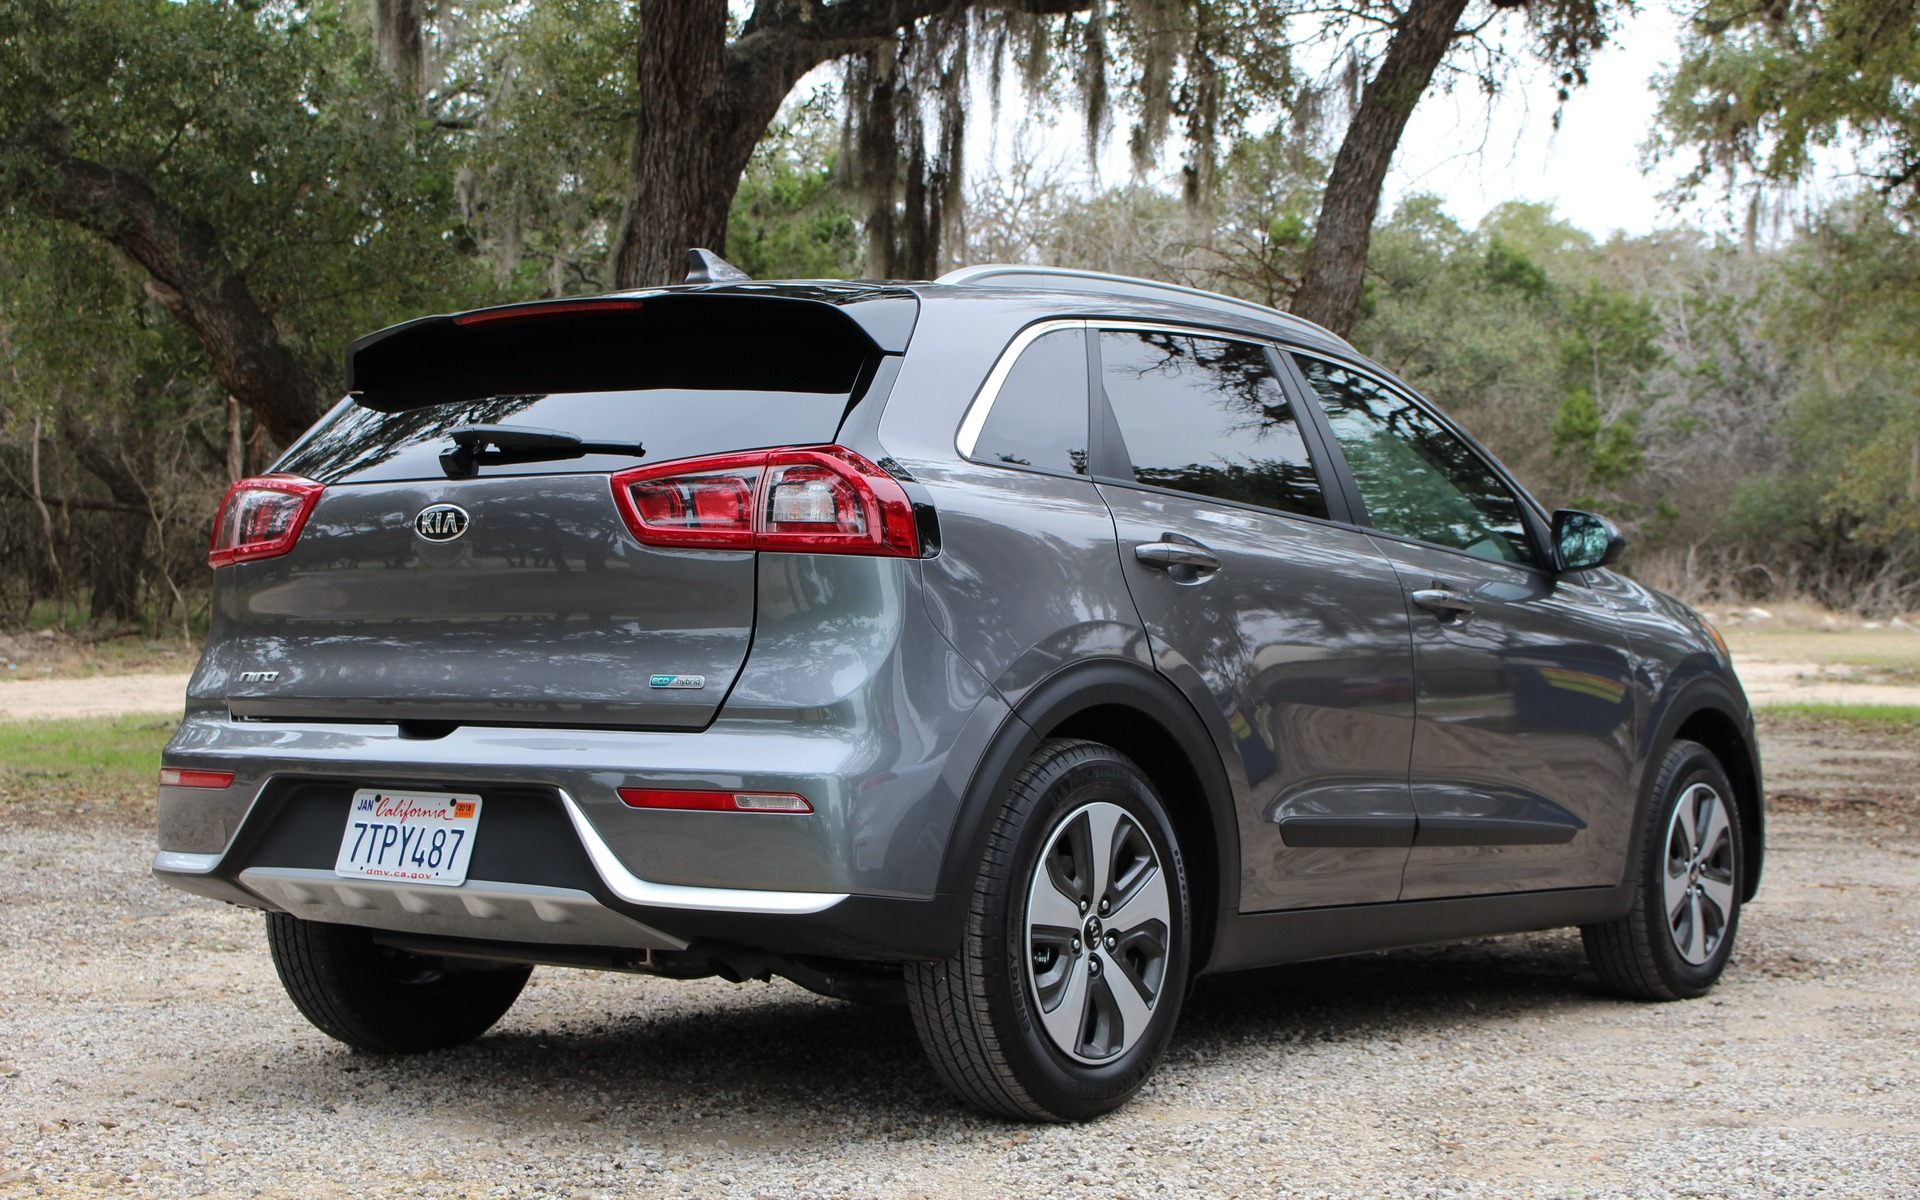 2017 kia niro phev and rubbing shoulders with other kia models 14 20. Black Bedroom Furniture Sets. Home Design Ideas